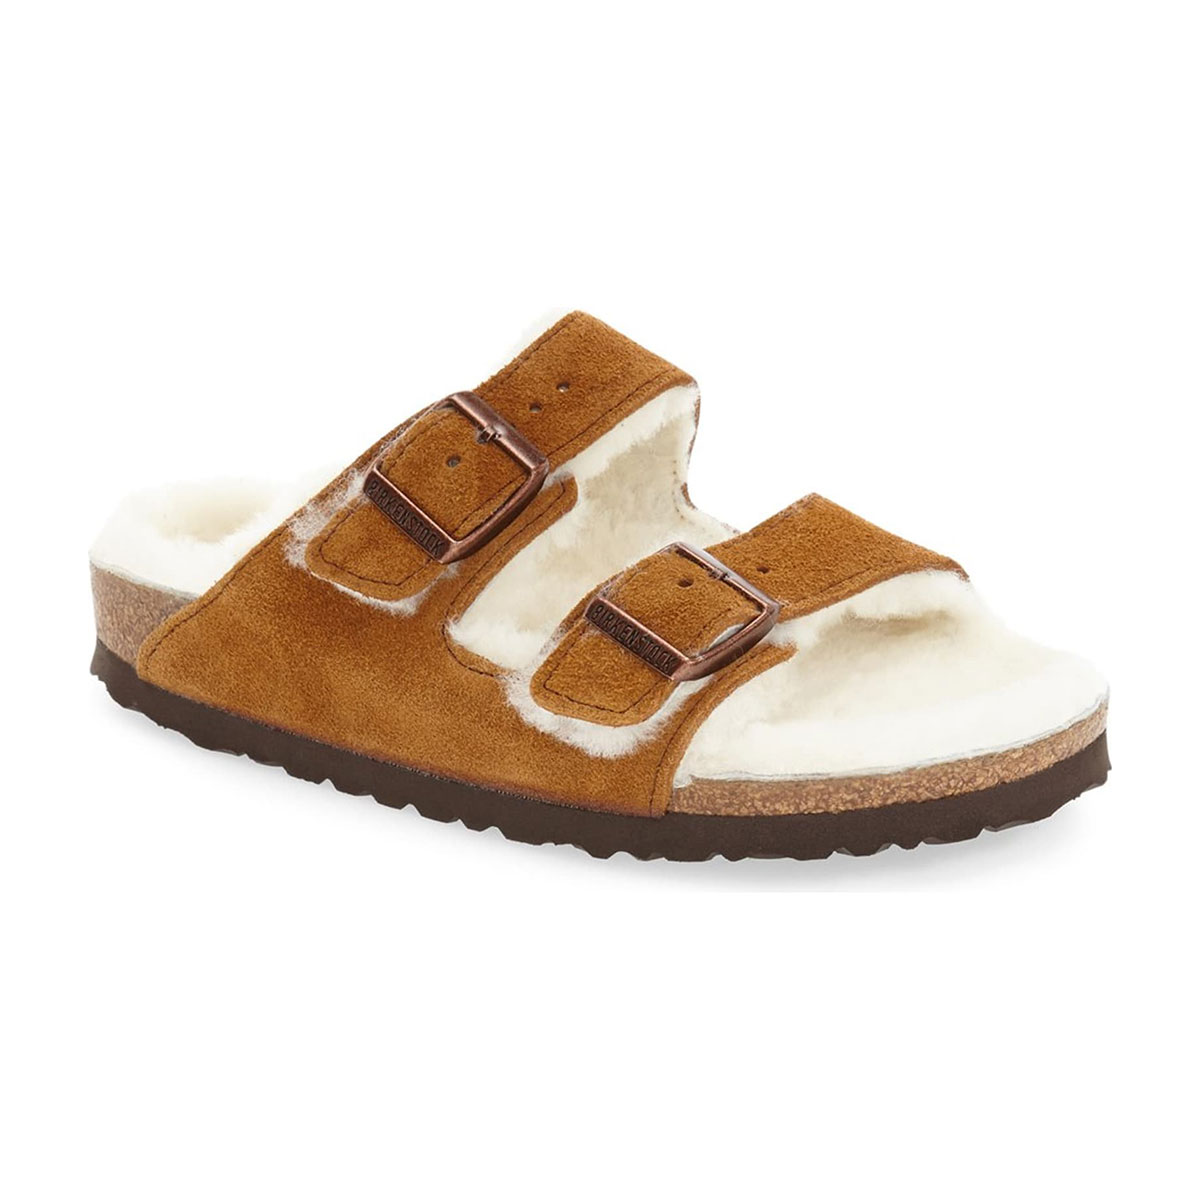 Arizona' Genuine Shearling Lined Sandal BIRKENSTOCK